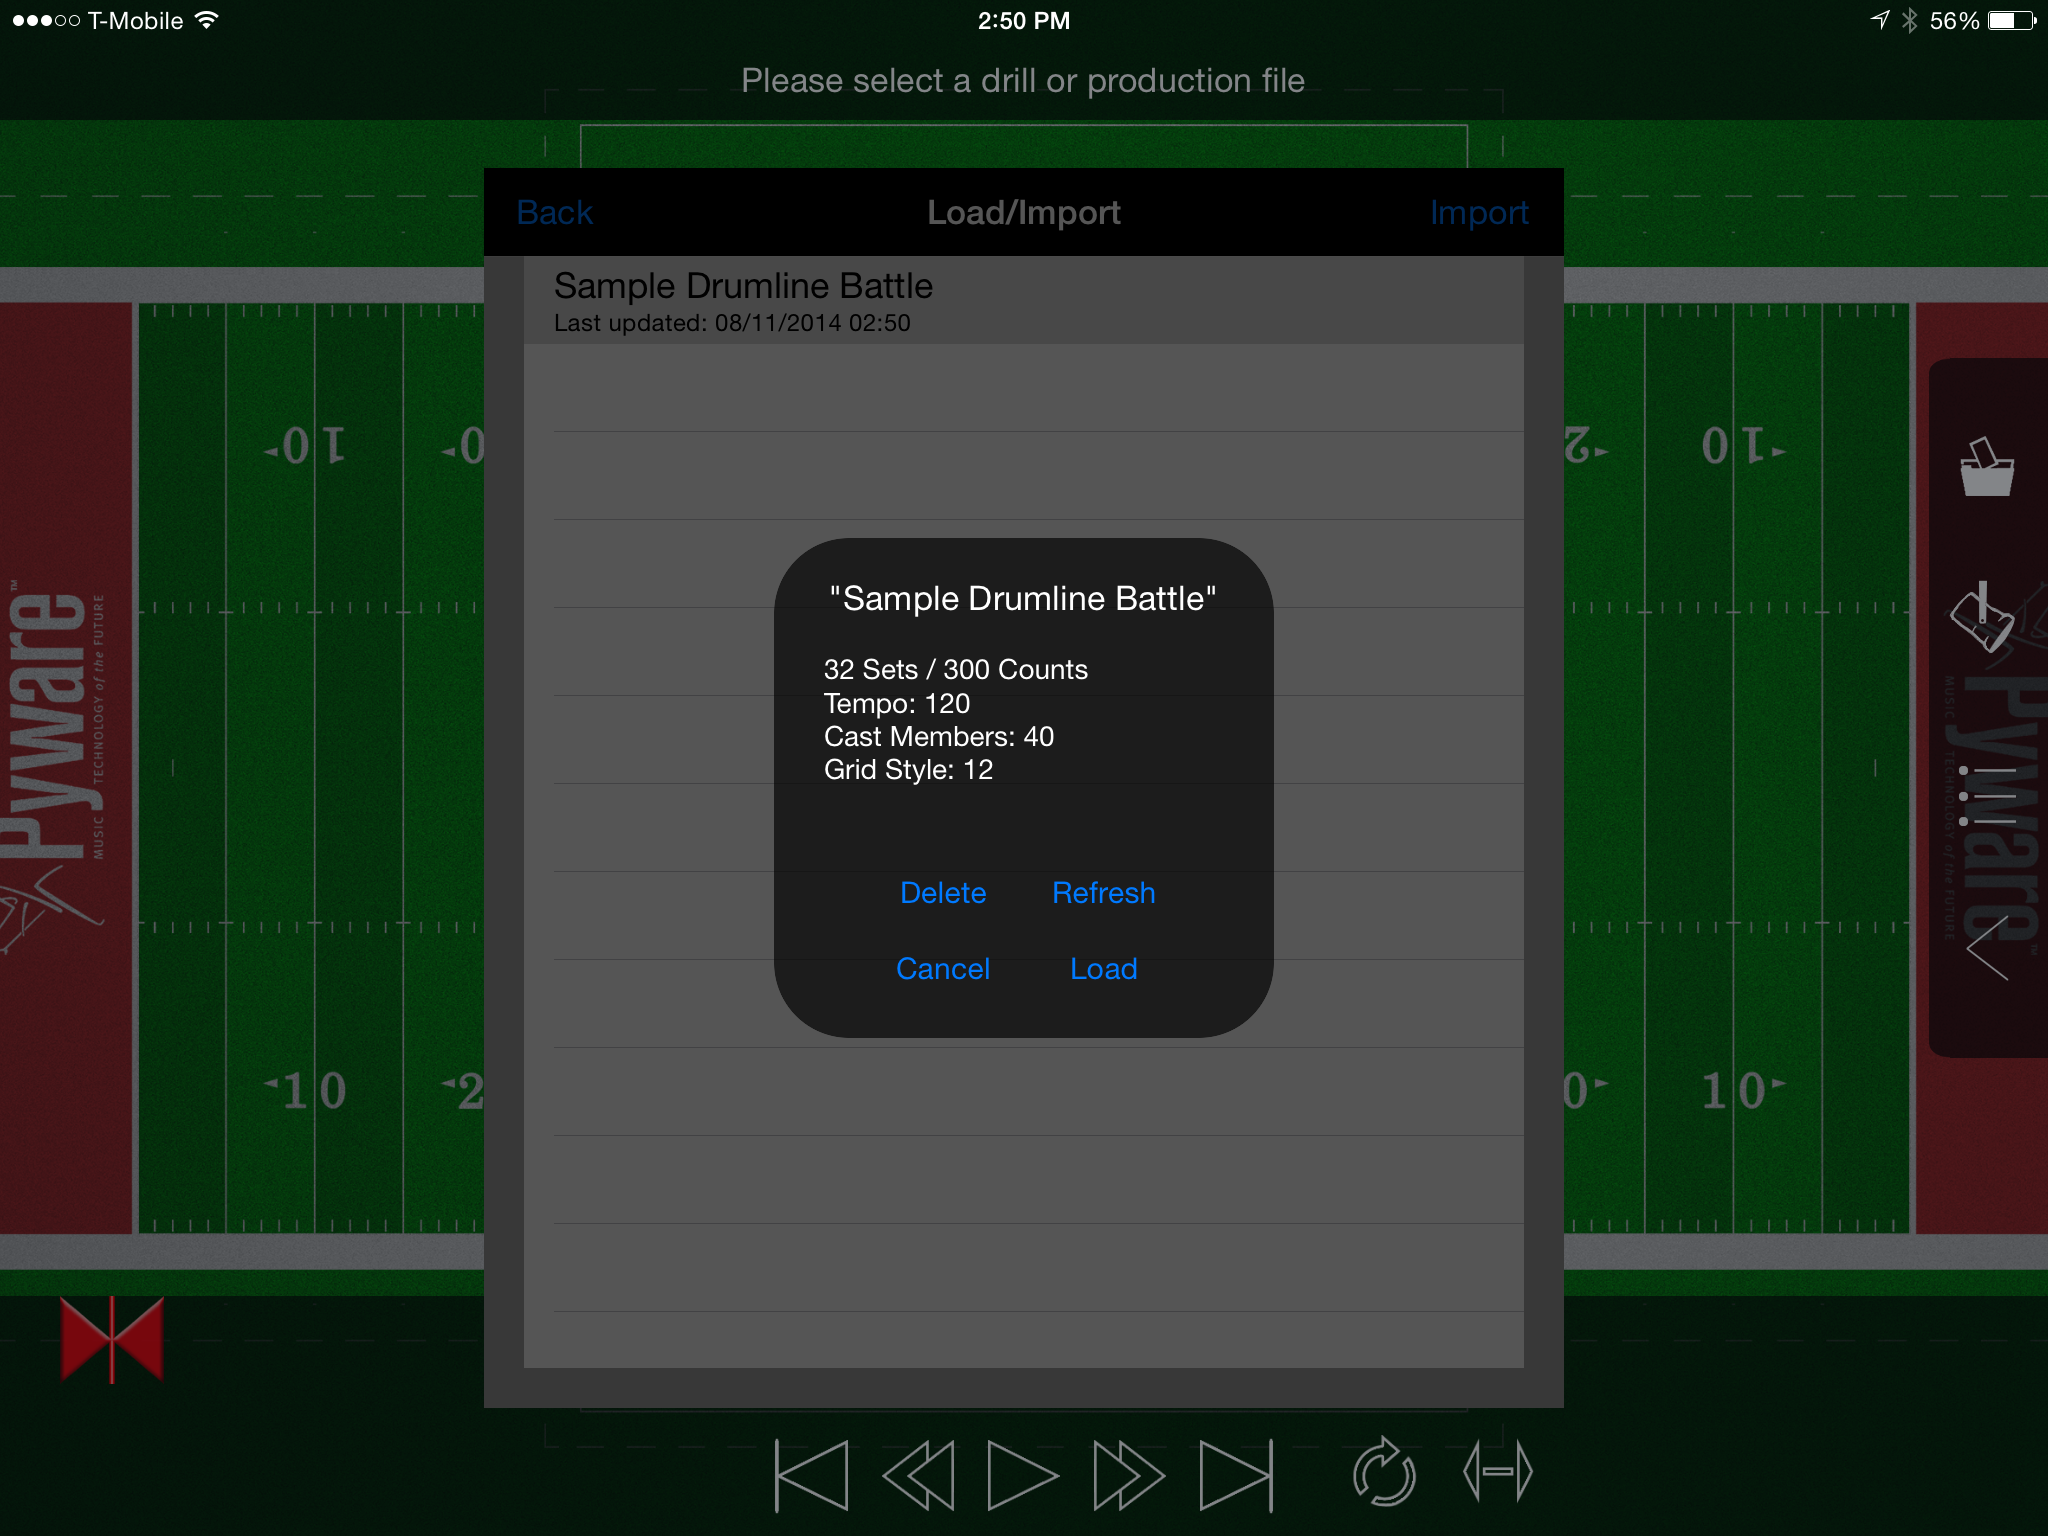 View Drills on iOS - Pyware 3D User Guide - 8 0